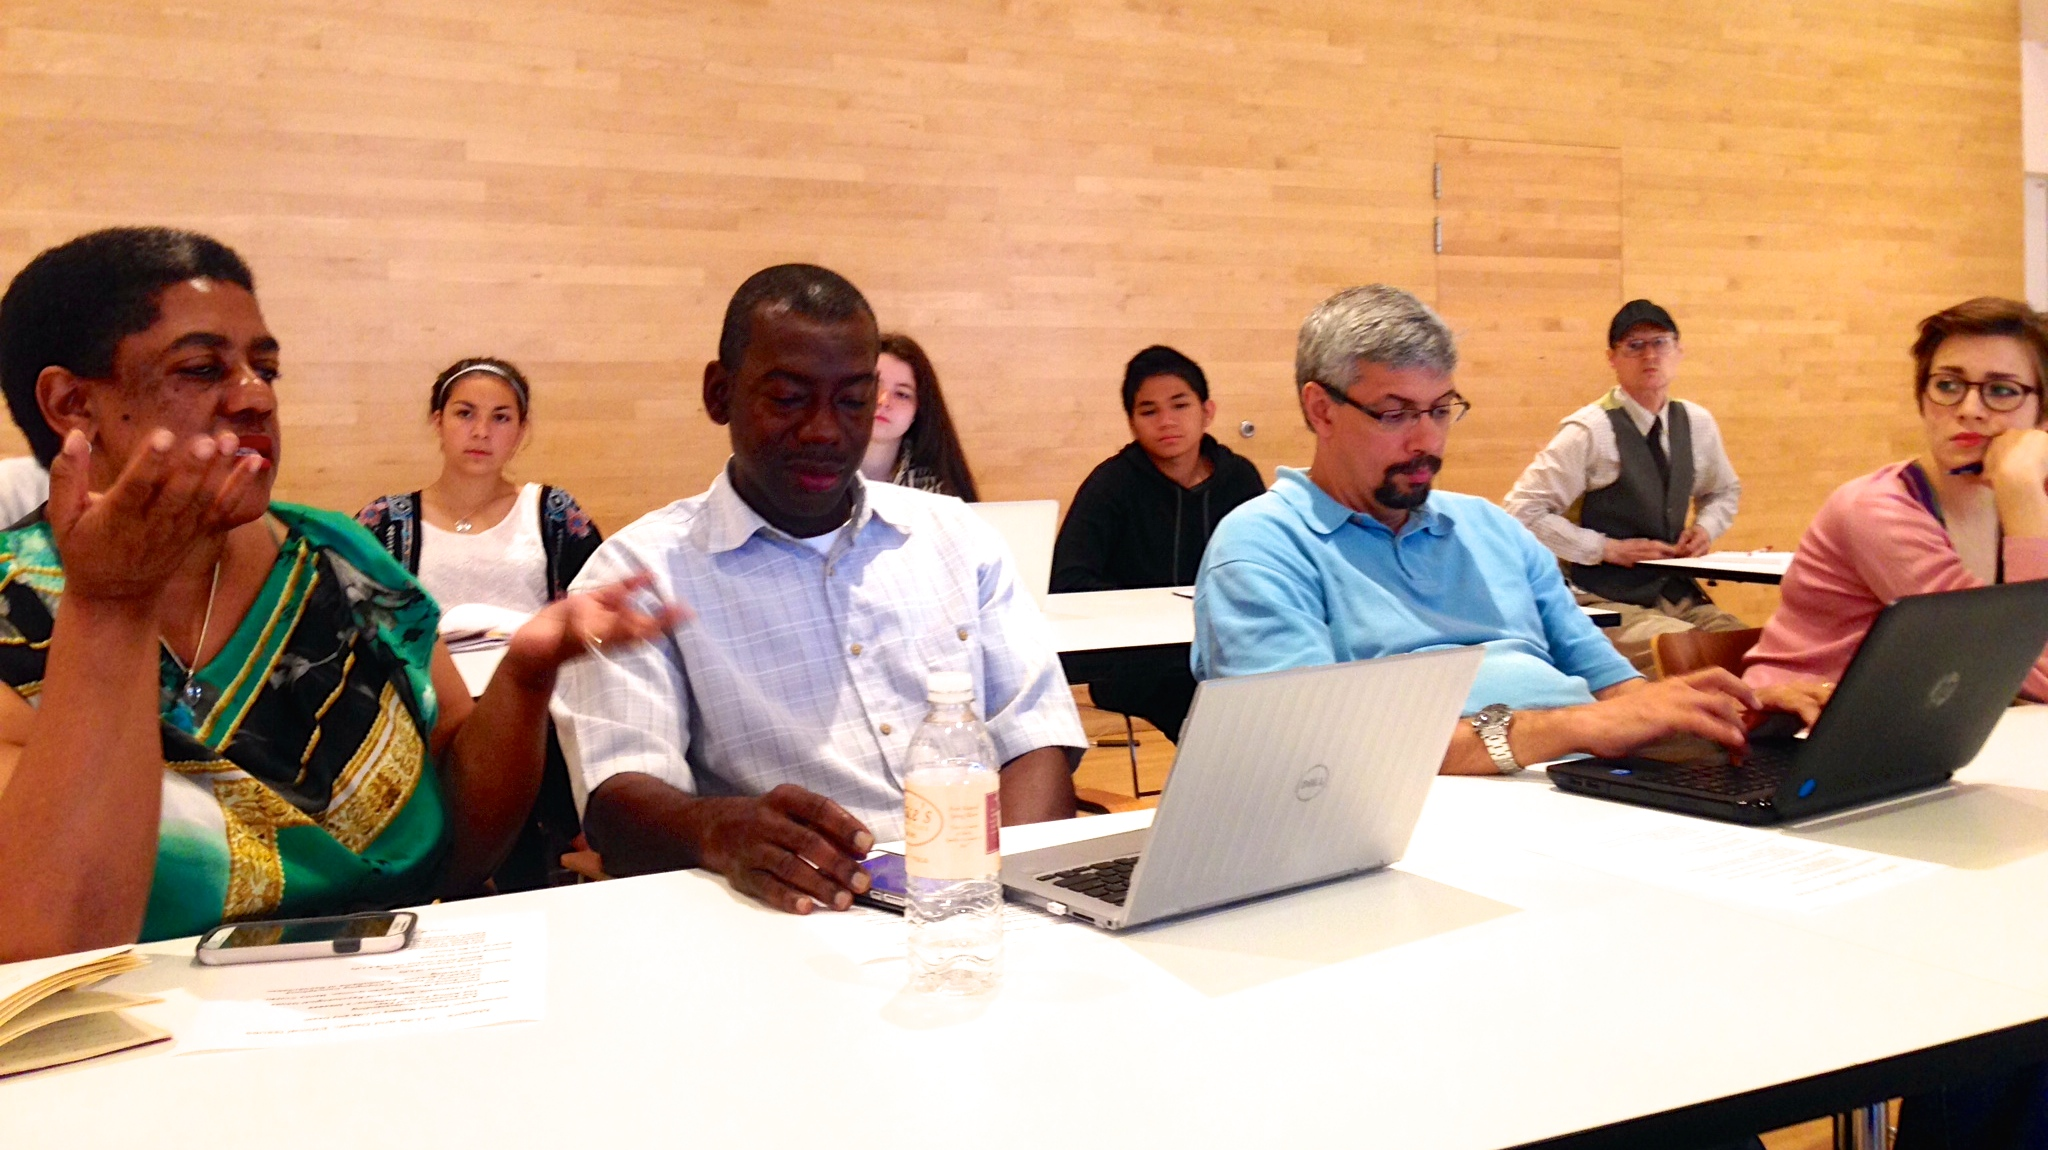 Summer School participants (from left to right): Lea Pinki Chirwa, Addo Sampson, Henrique Souza, Emily Pichardo Wojtyna